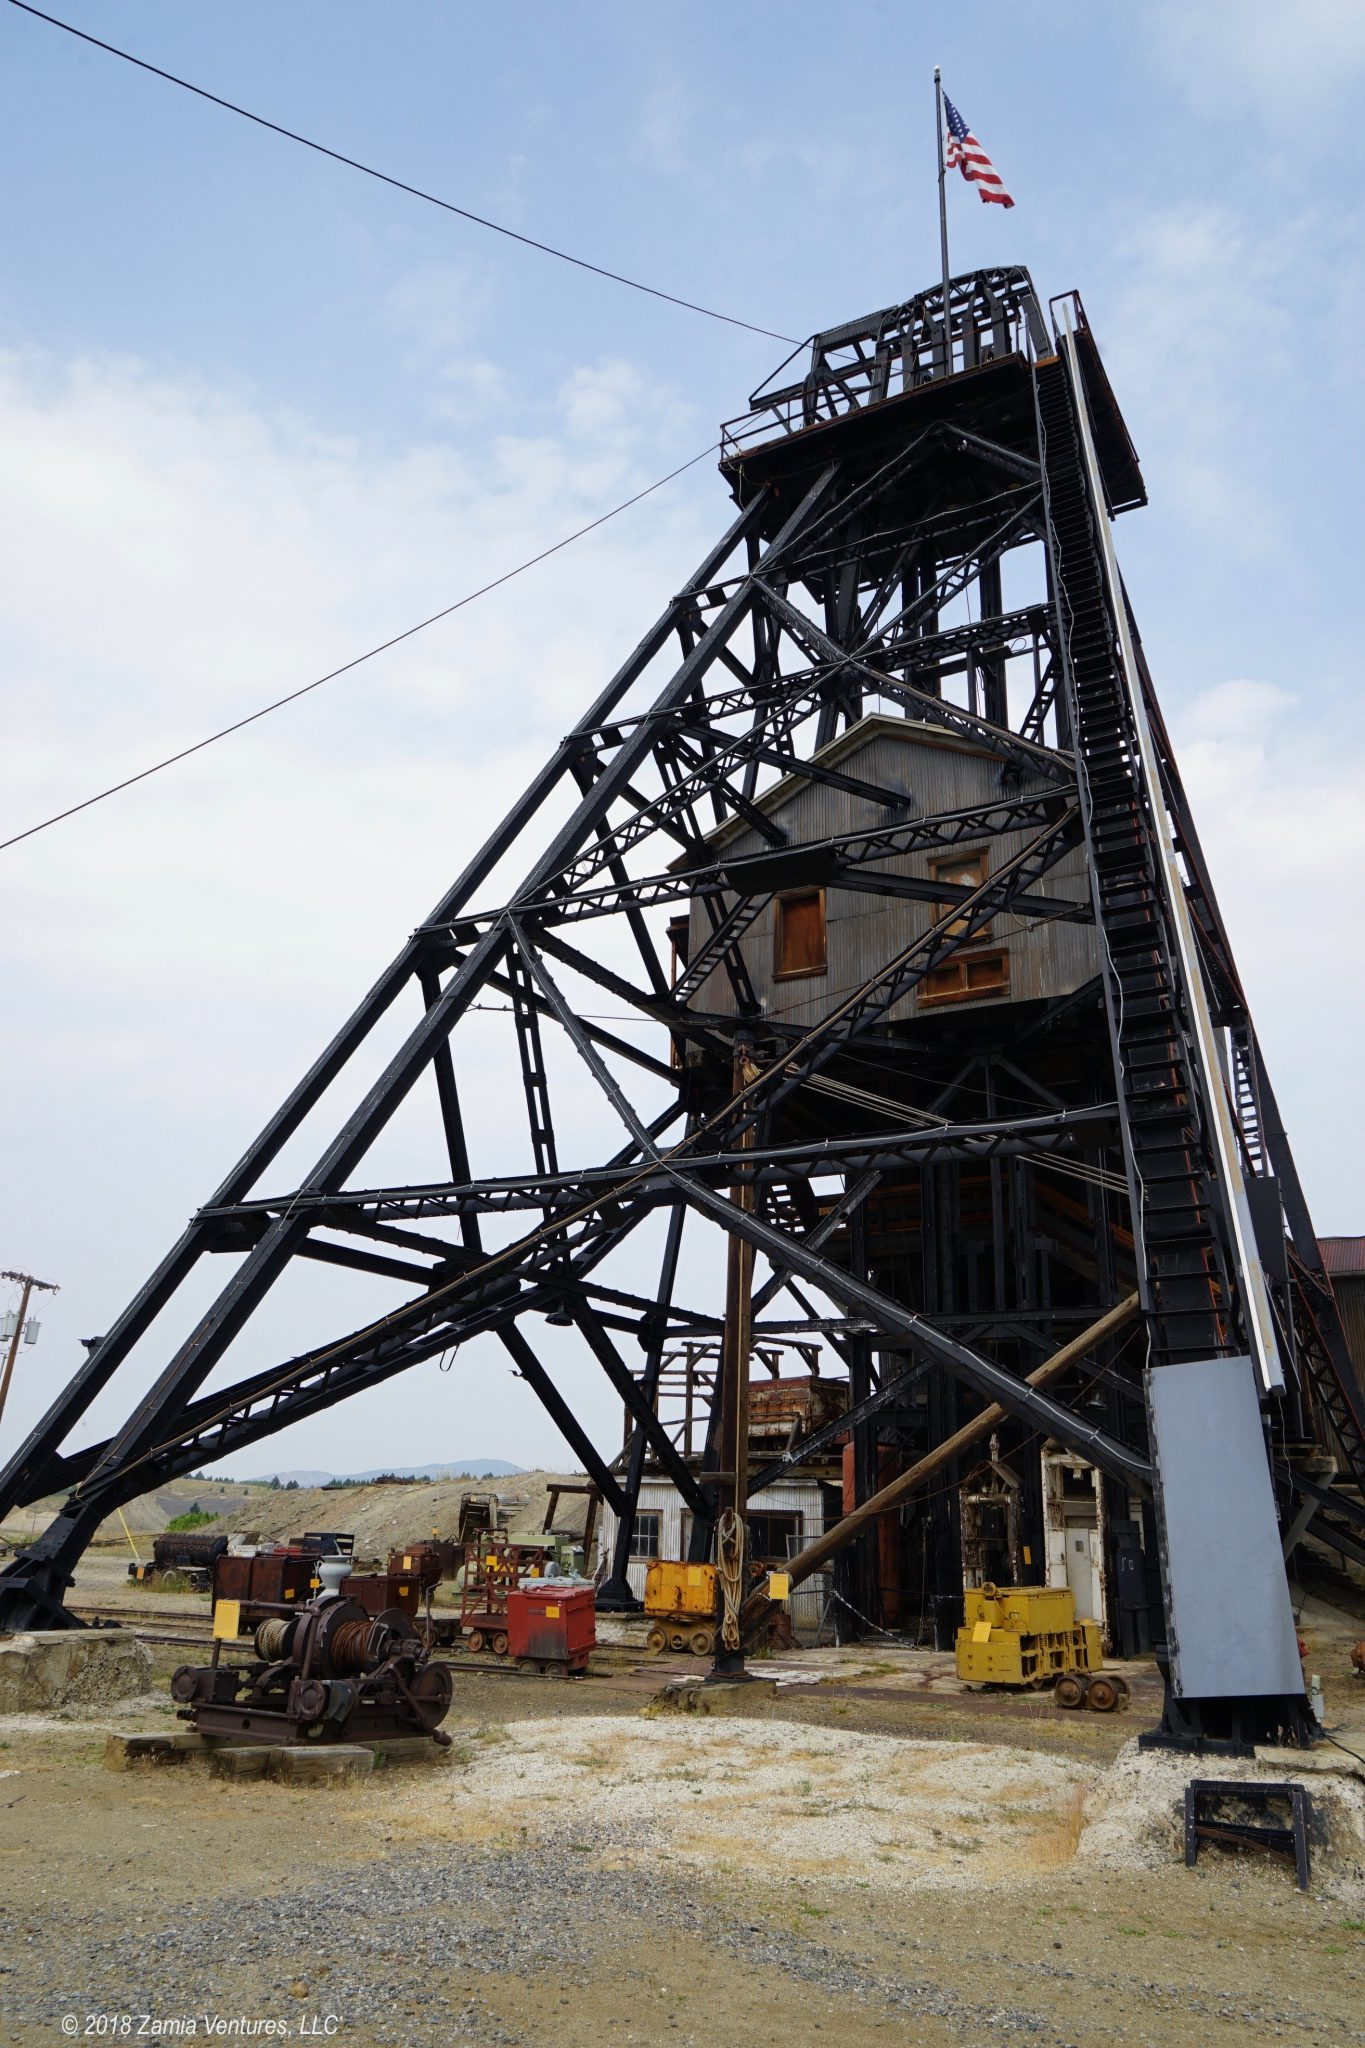 Digging into Mining History in Butte